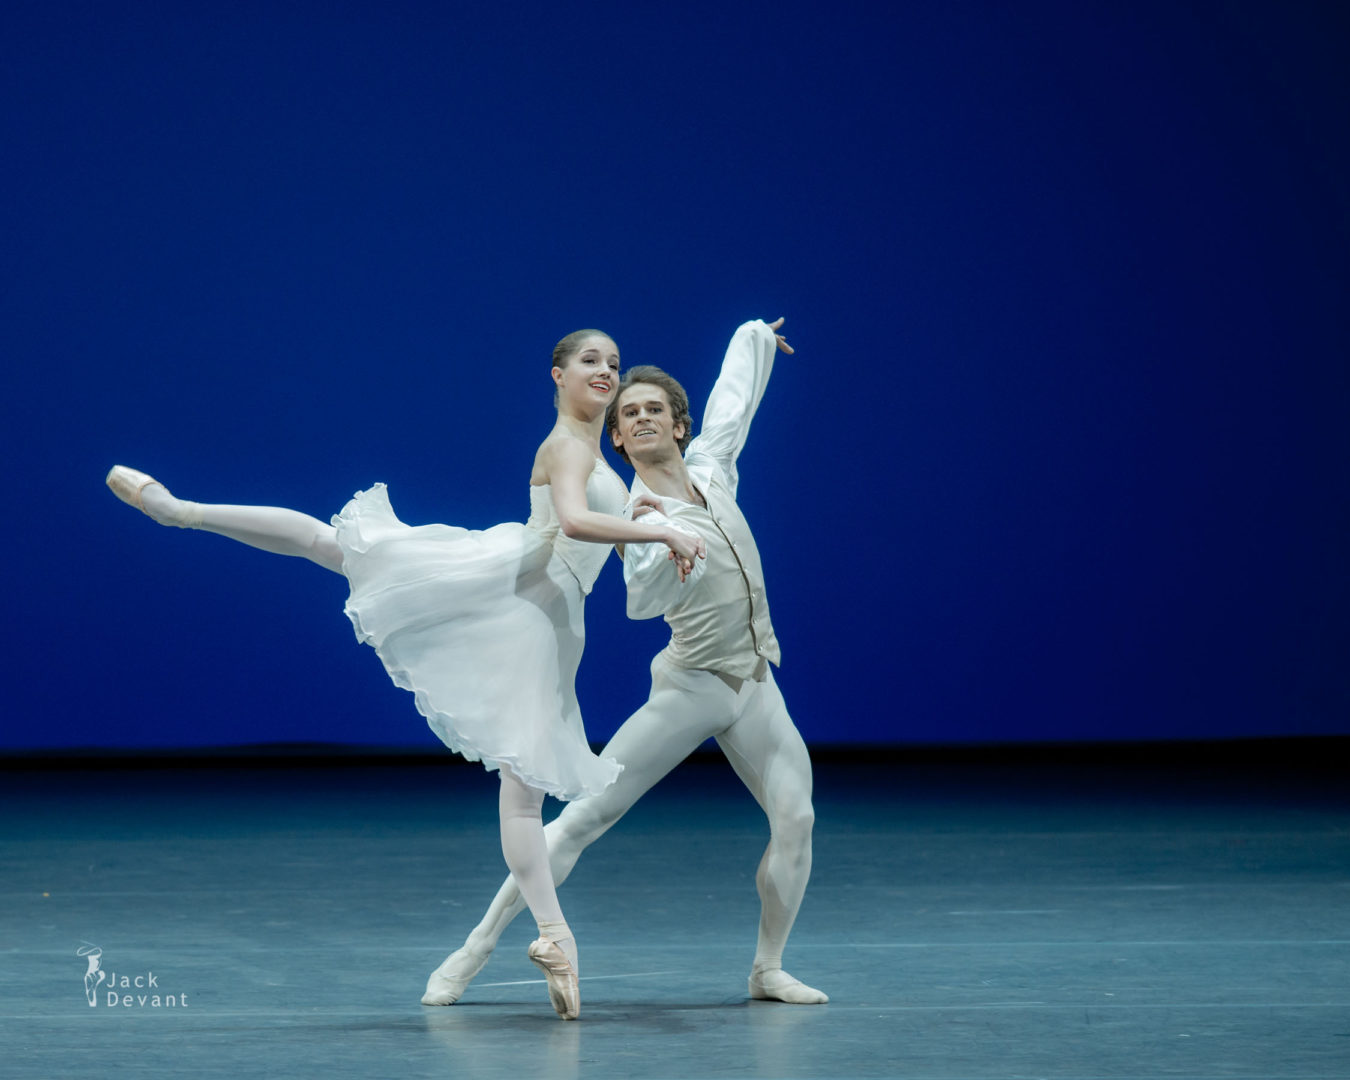 Emily Slawski and Dmitry Zagrebin in Tchaikovsky pas de deux, music by Pyotr Ilyich Tchaikovsky, choreography by George Balanchine